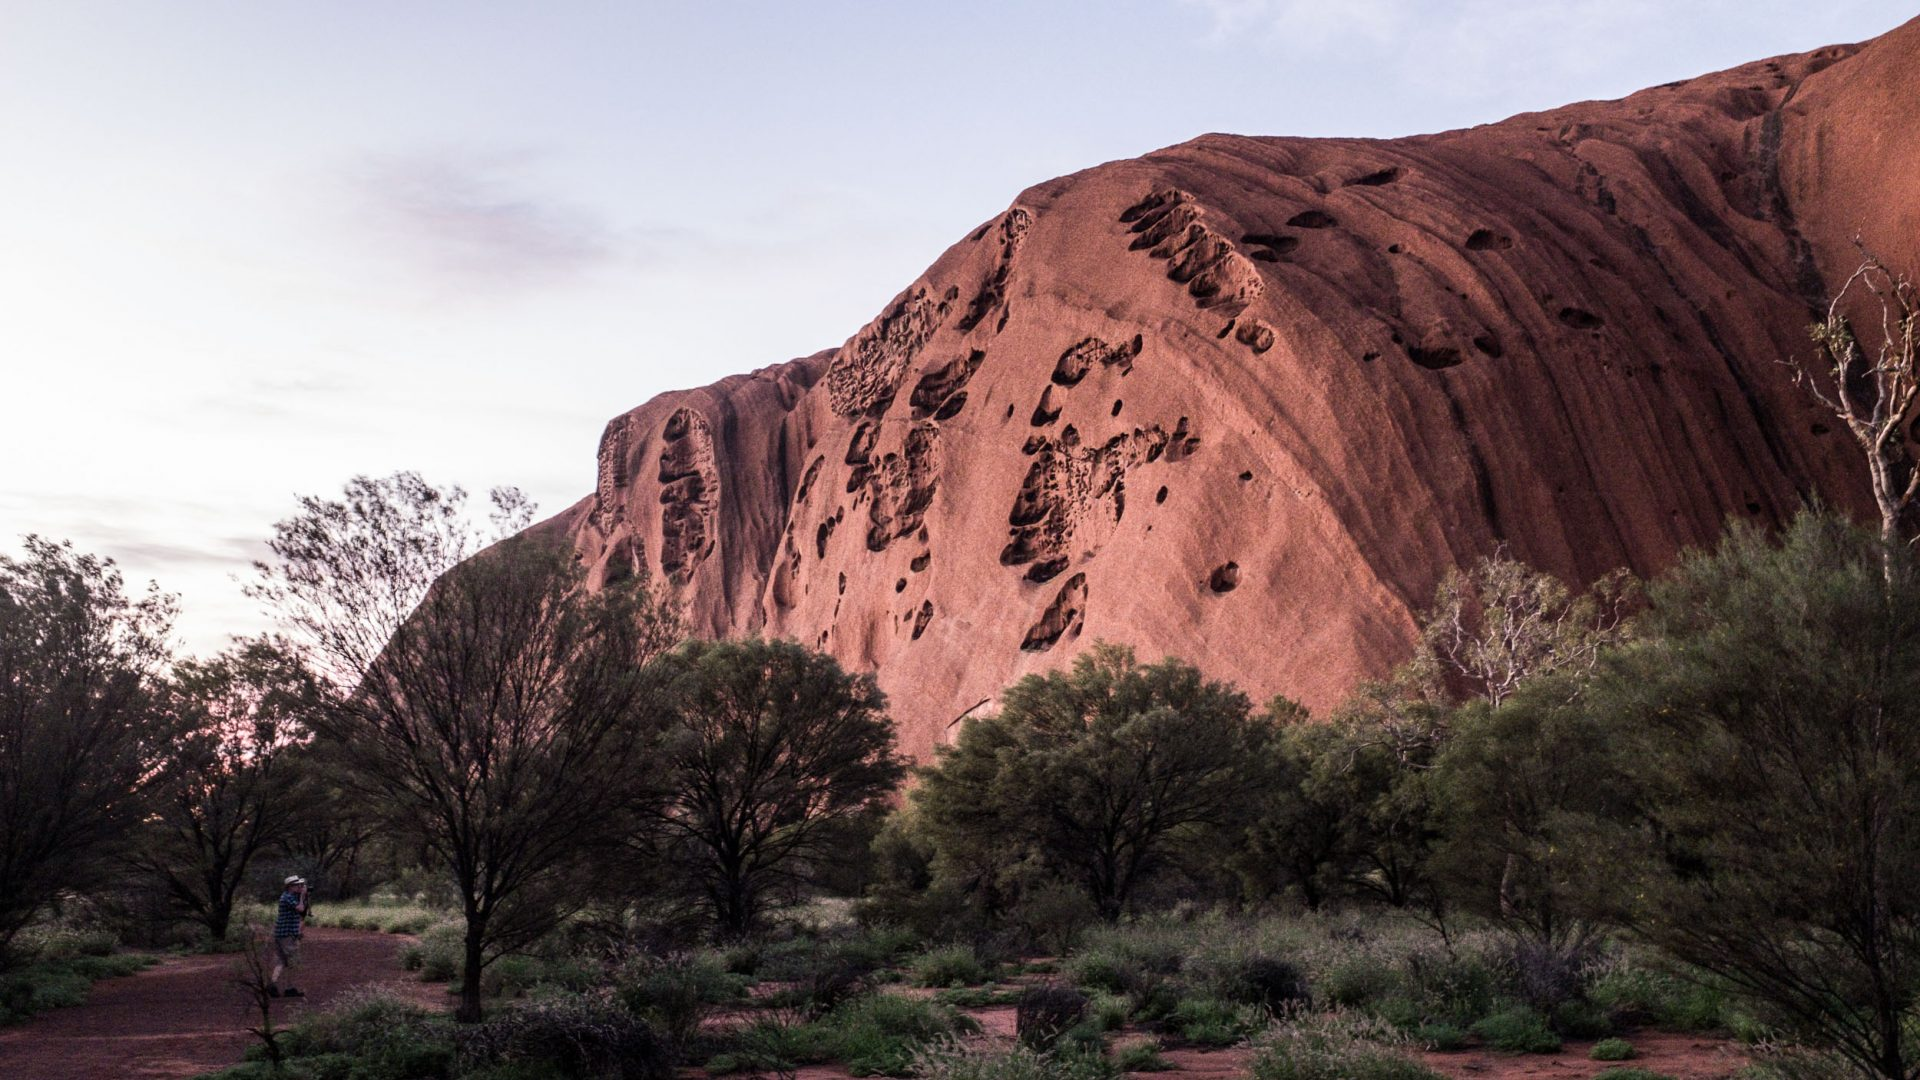 Uluru during the sunrise base walk.